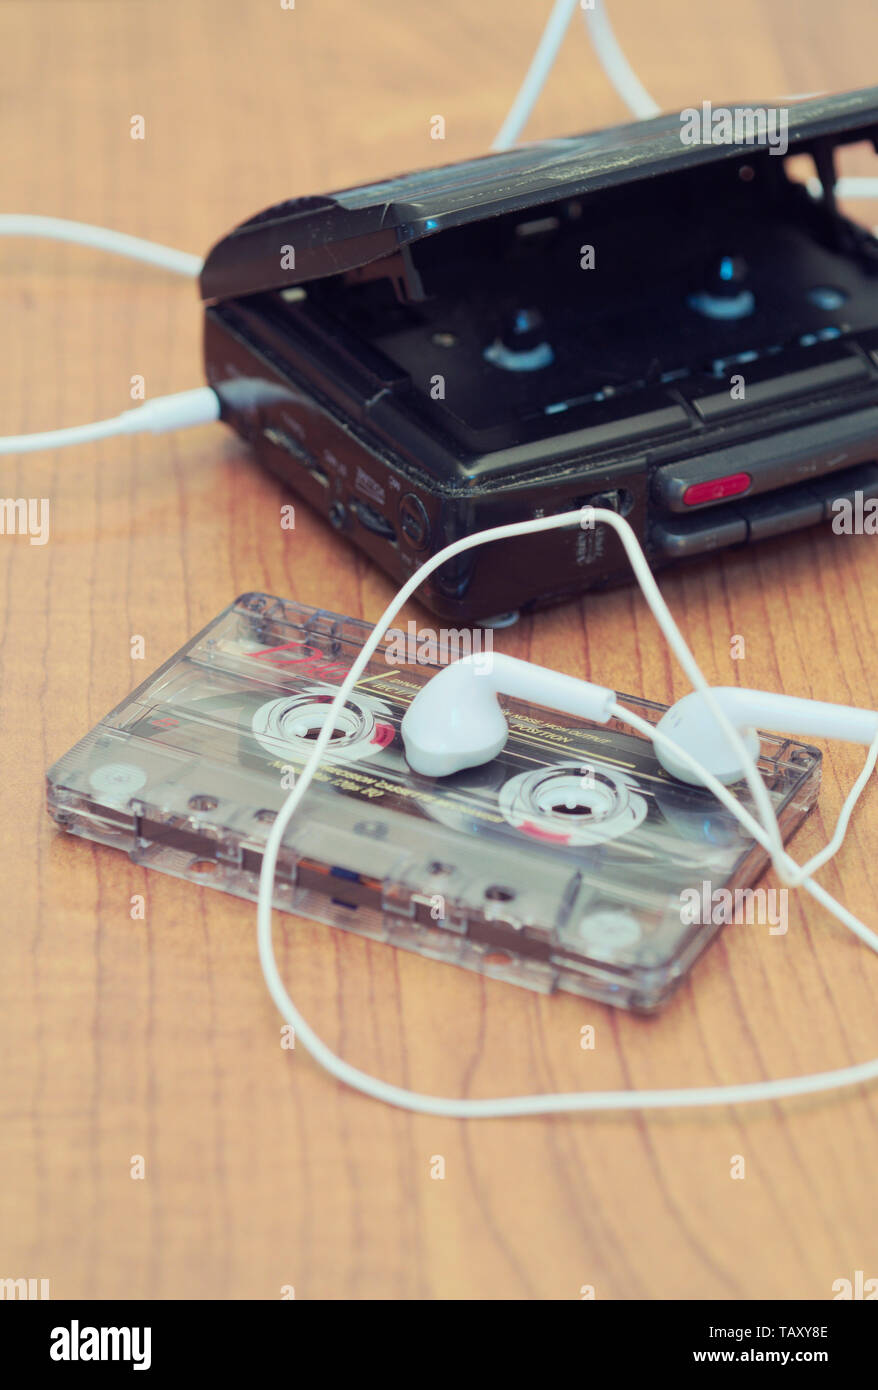 cassette player with earbuds and tape cassette - Stock Image